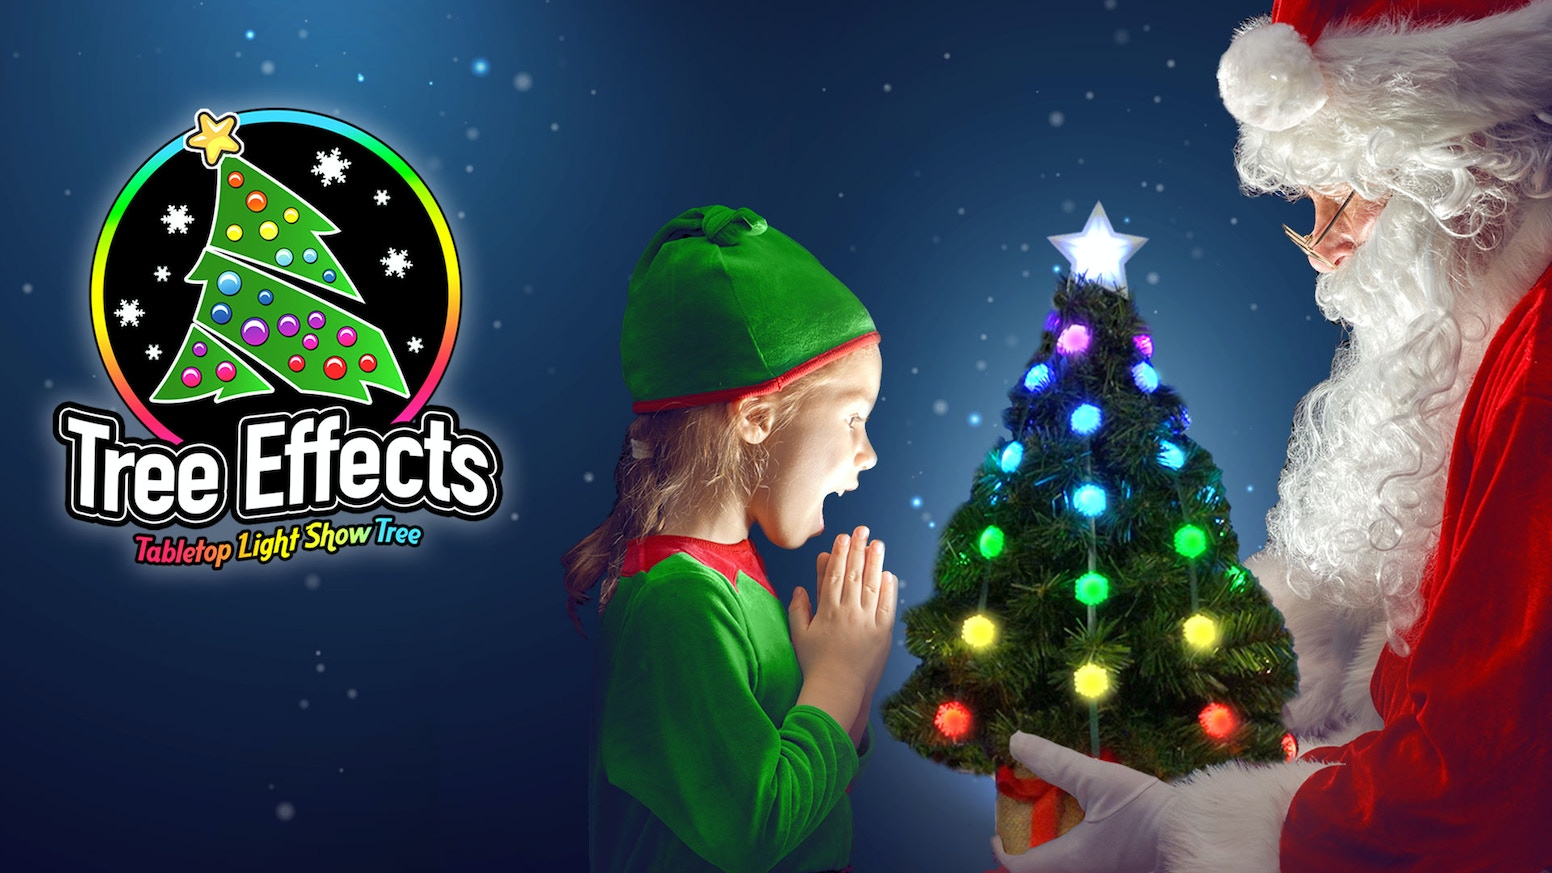 We have created the ultimate pre-lit tabletop Christmas tree. It has 50 full-color effects, changeable light caps, and an IR remote. You can still pre-order at www.TreeEffects.com